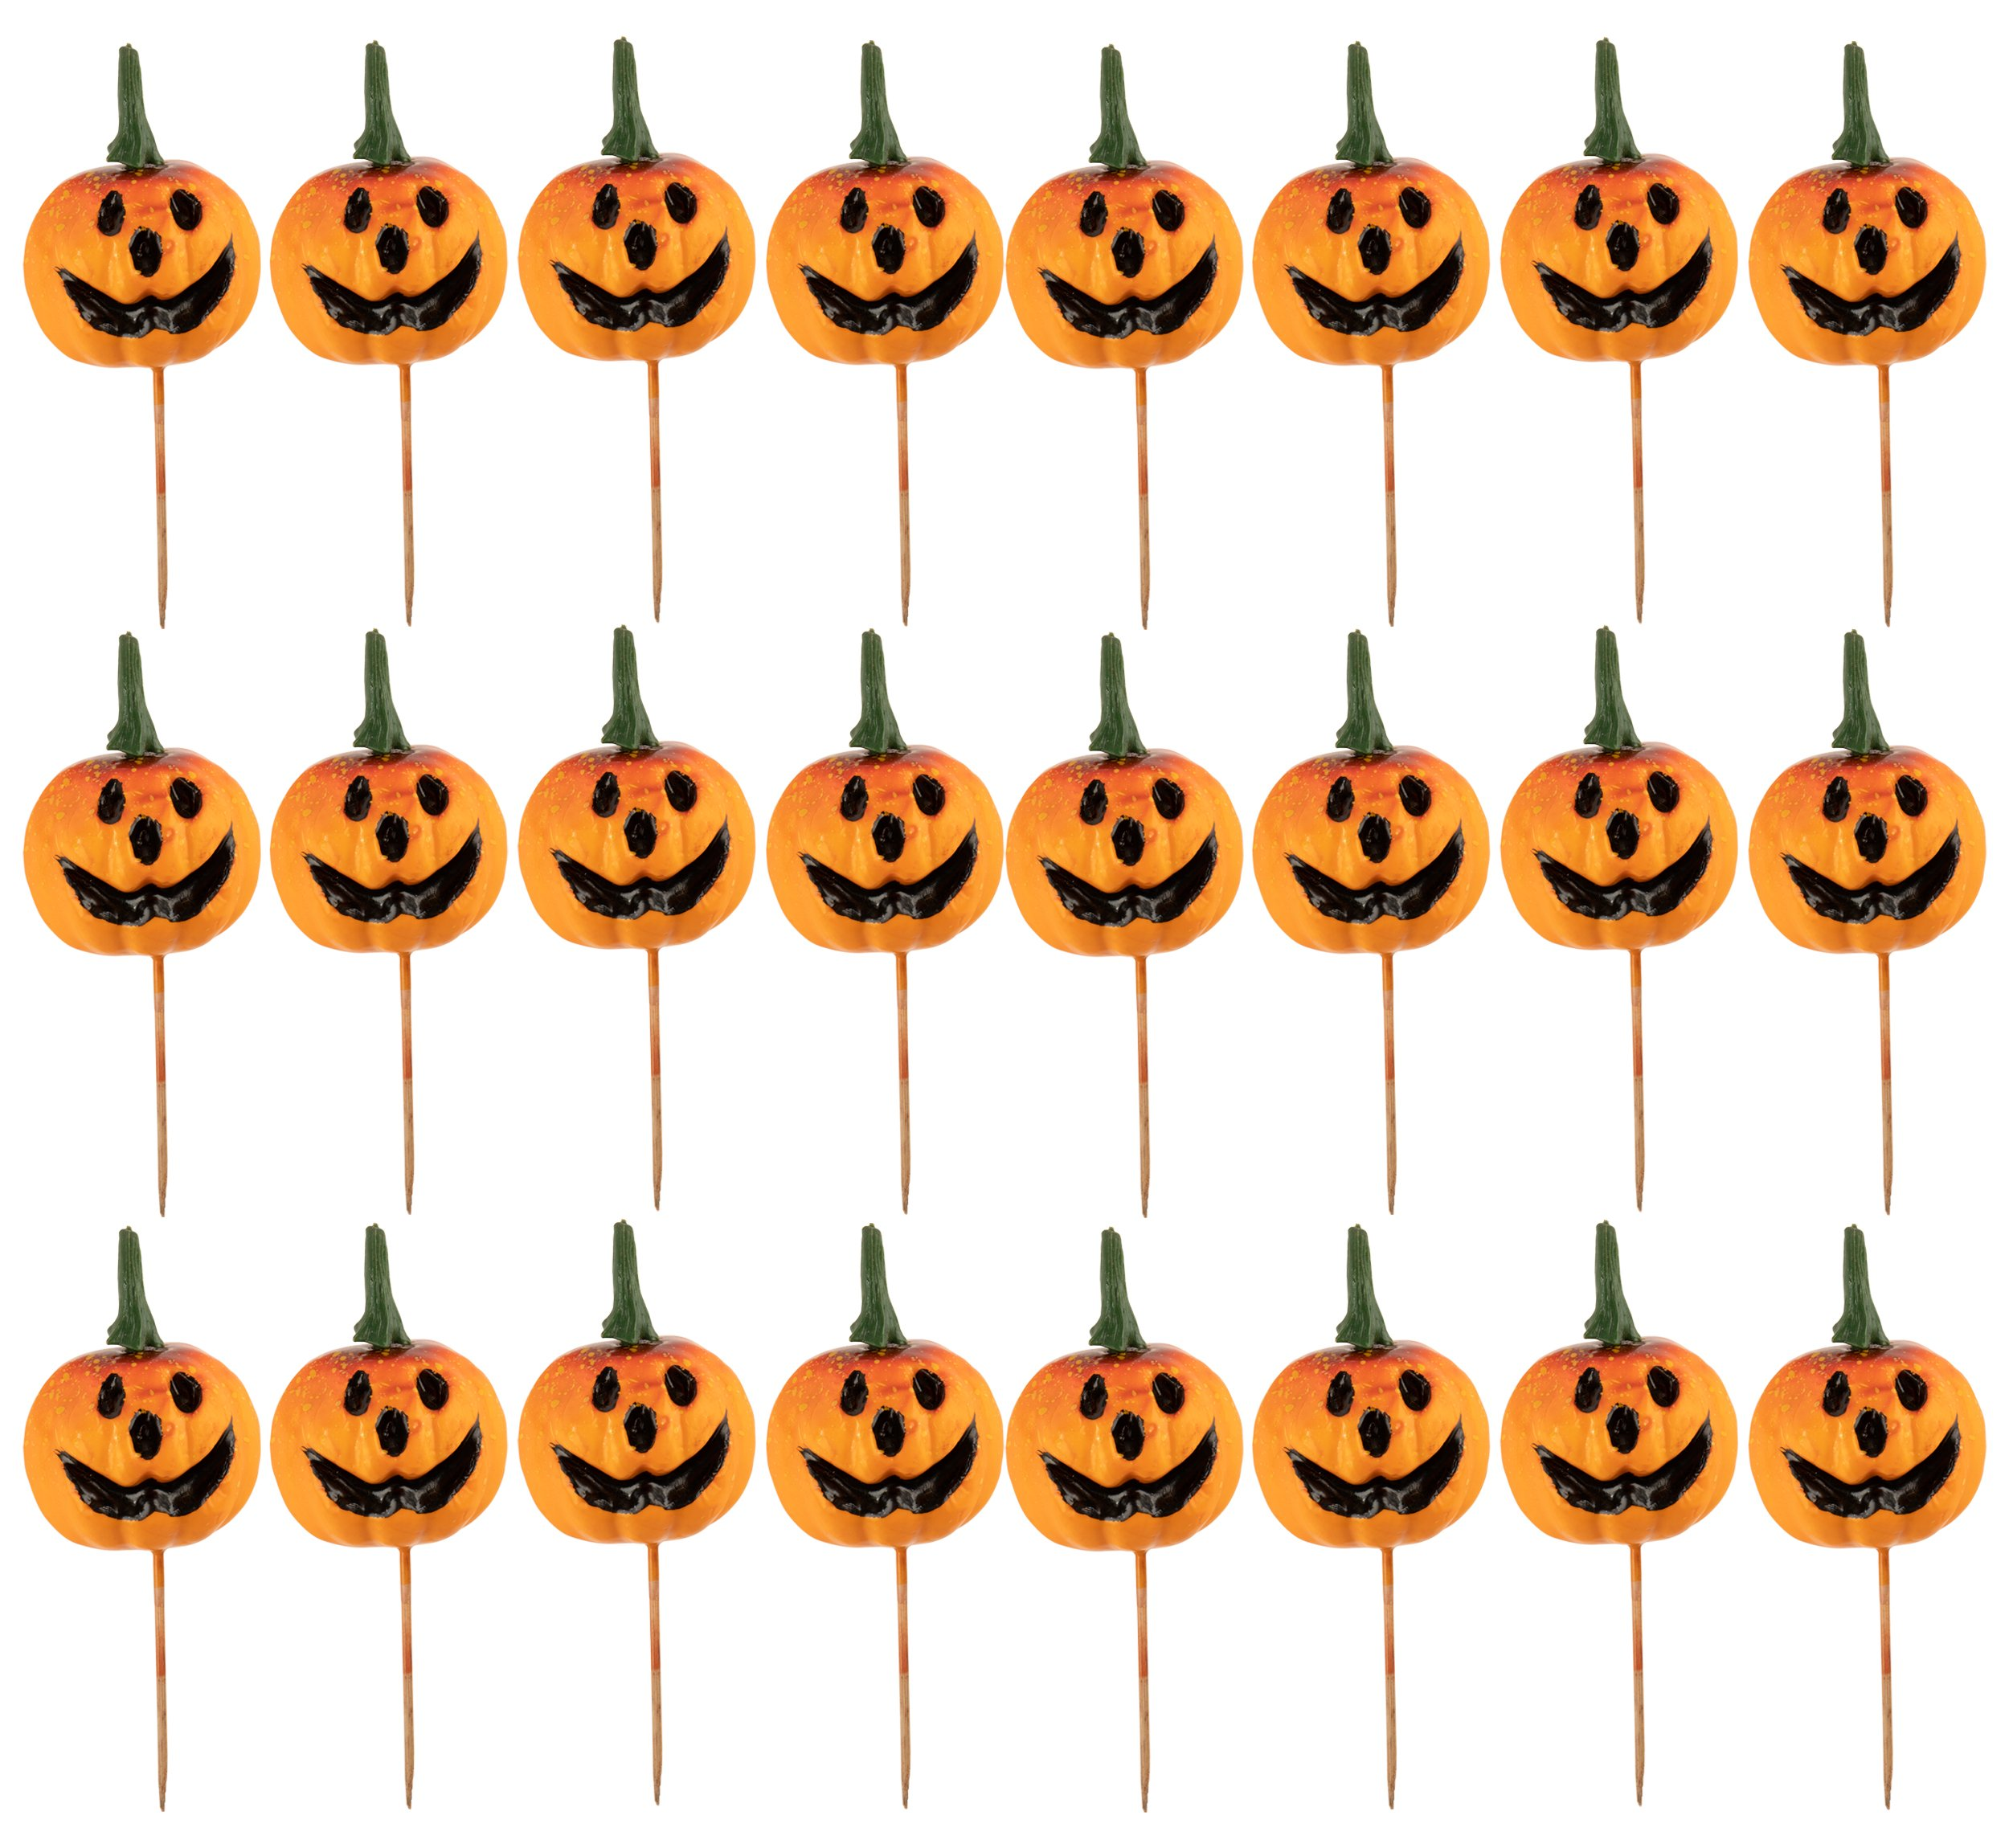 Cupcake Toppers - 24-Piece Halloween Themed Cocktail Picks Party Favors, Cake Decoration Supplies, Sandwich Holders, Jack-O-Lantern Pumpkin Toothpicks, Orange, 6.375 Inches Tall